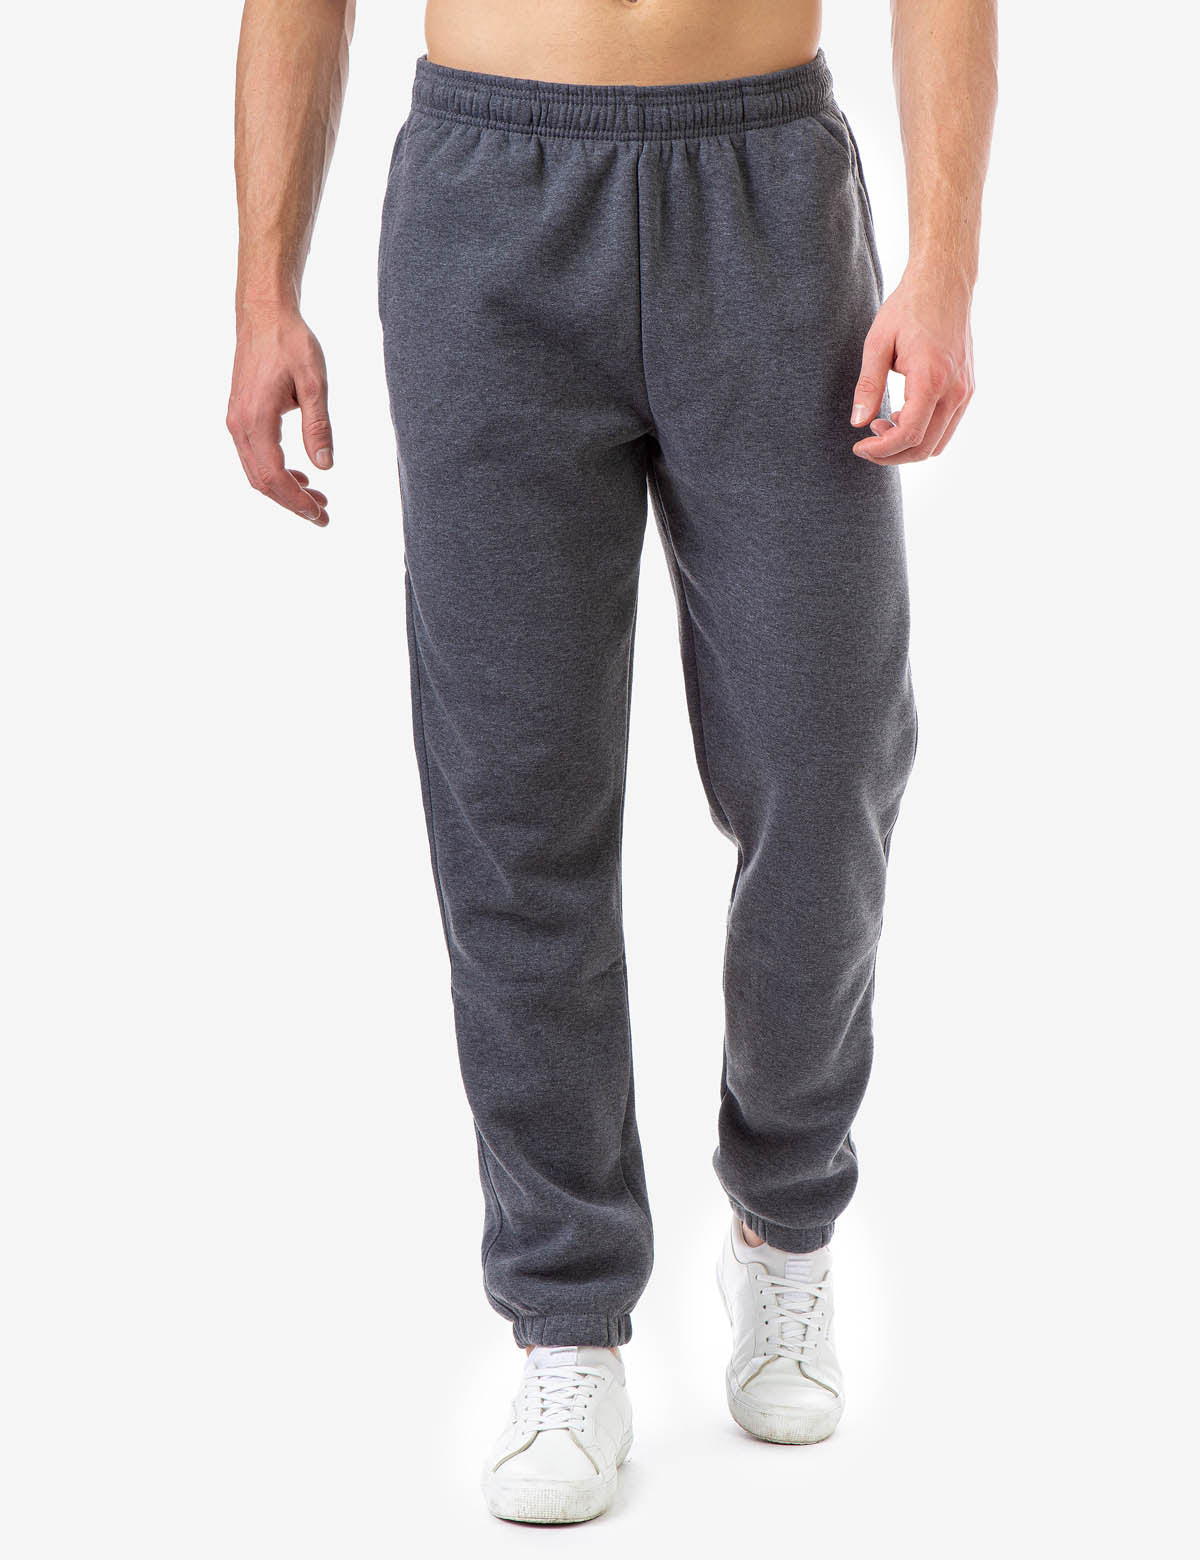 SOLID FLEECE PANT - U.S. Polo Assn.